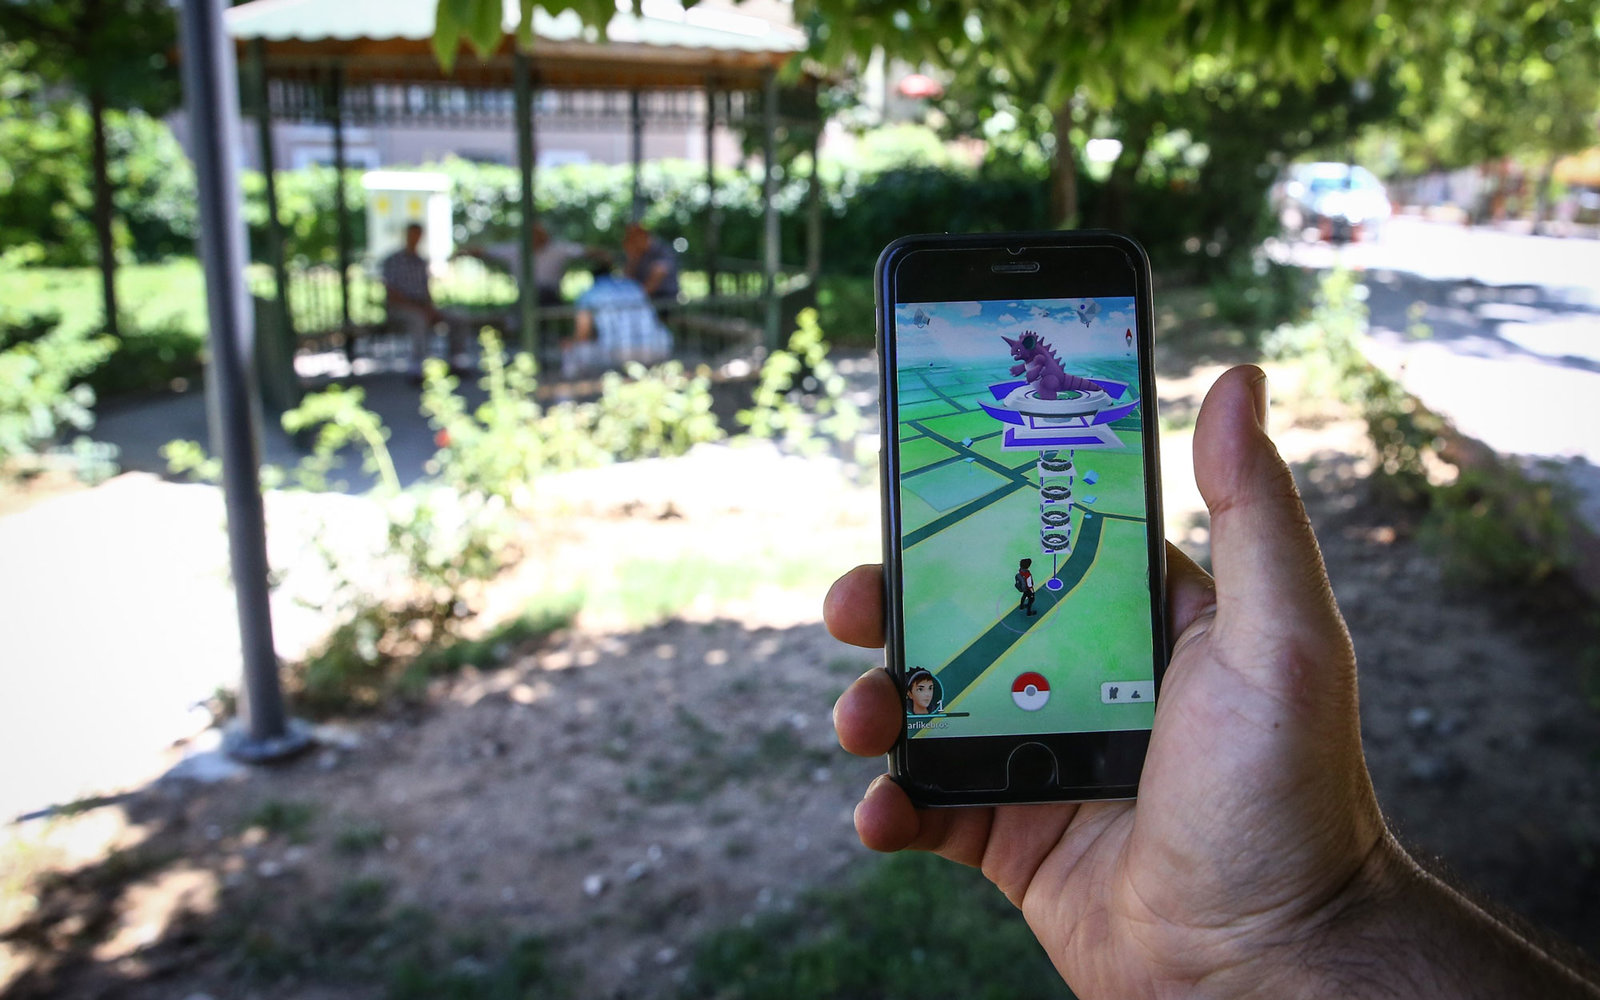 Man Quits Job to Travel Play Pokemon Go